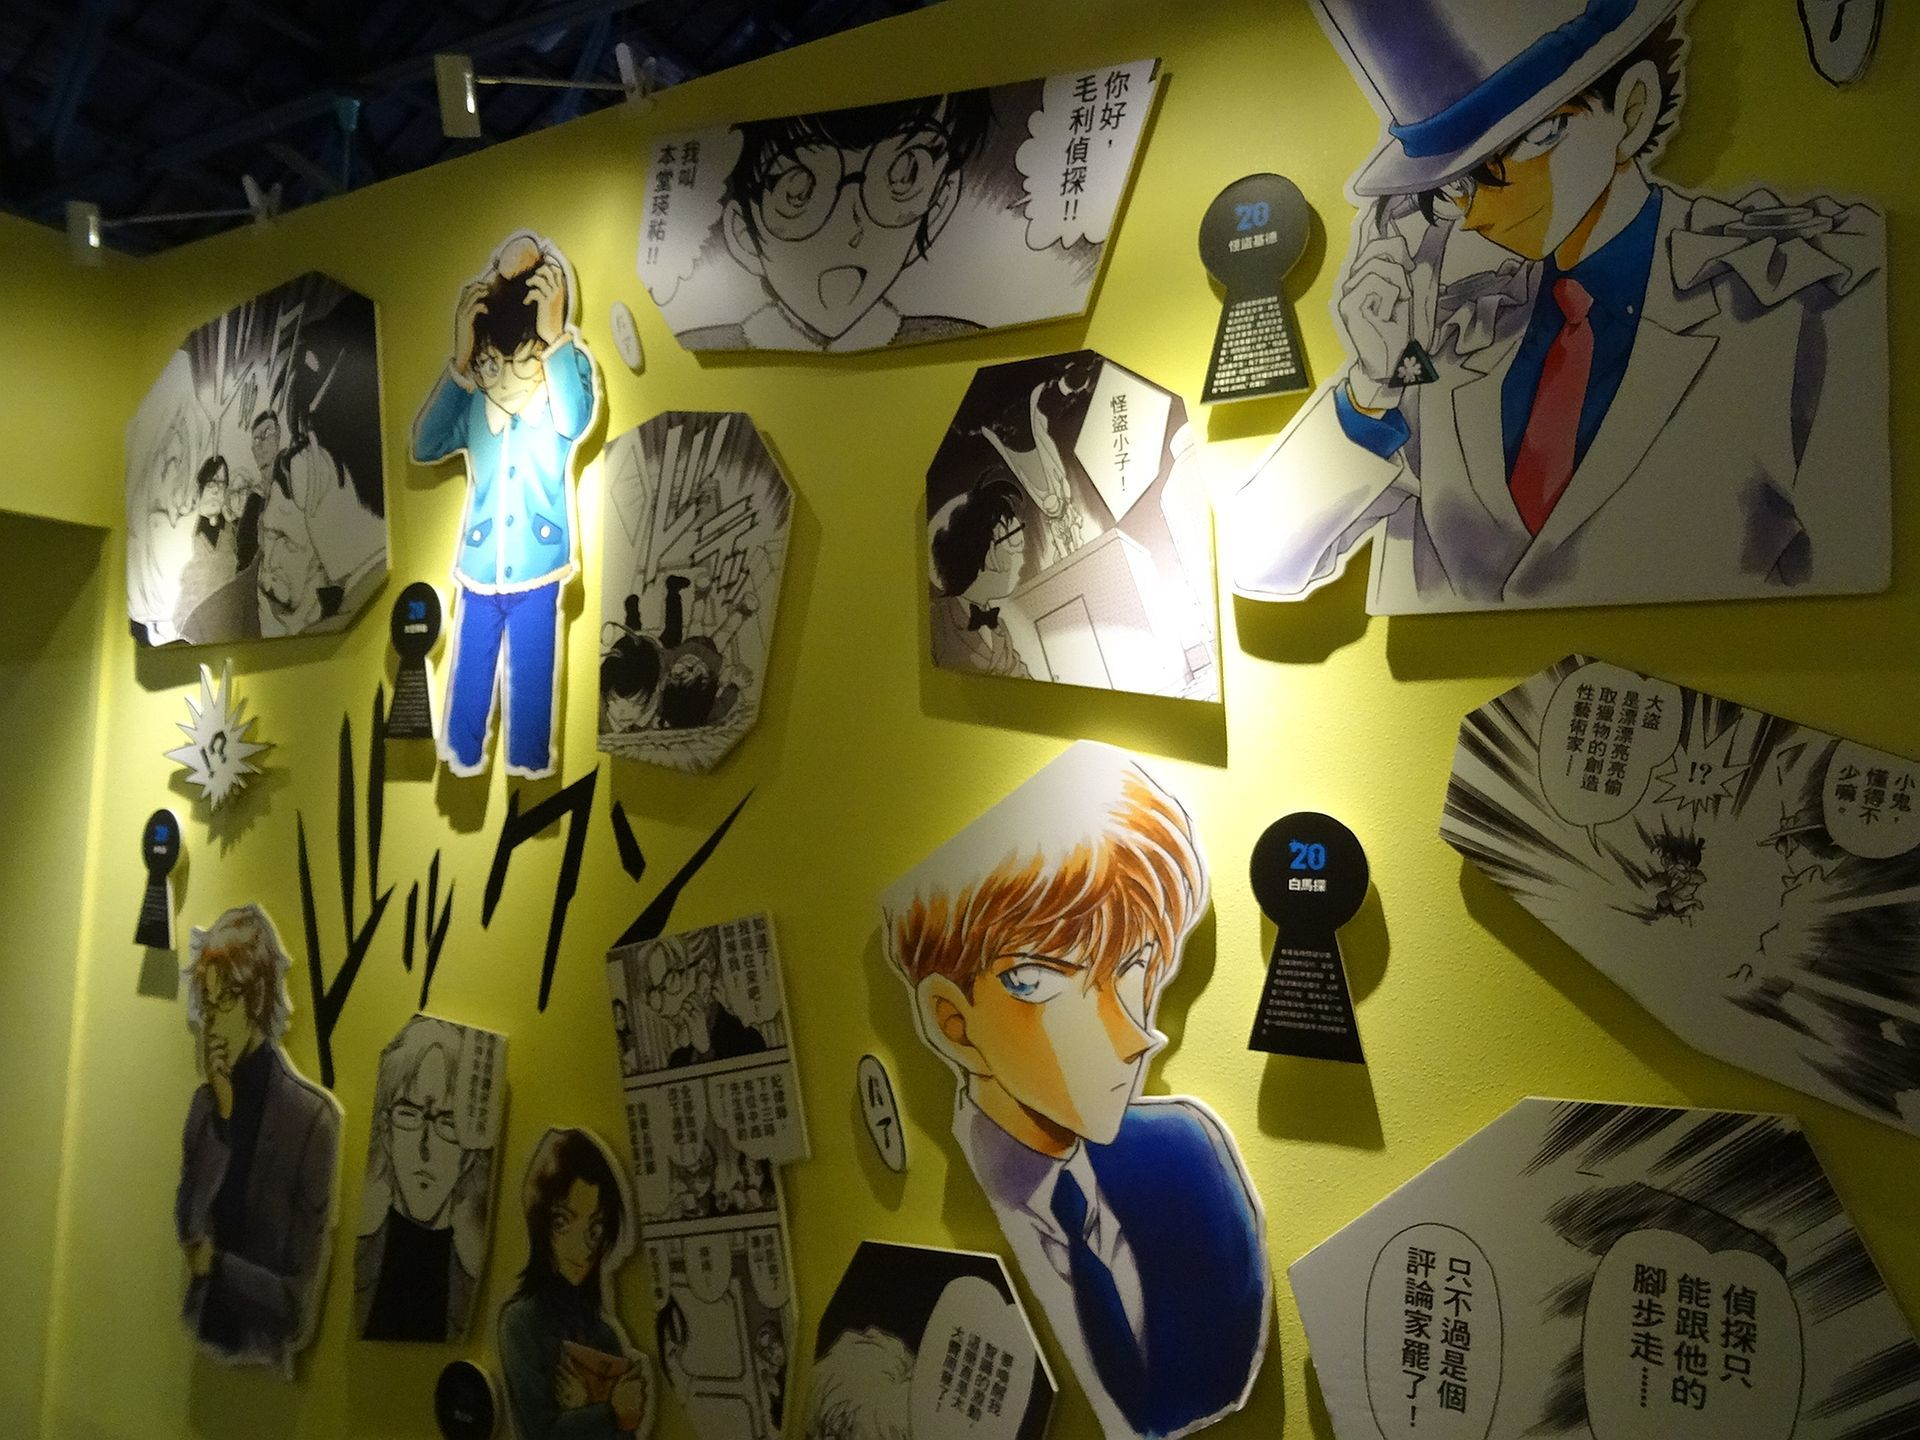 detective-conan-exhibition